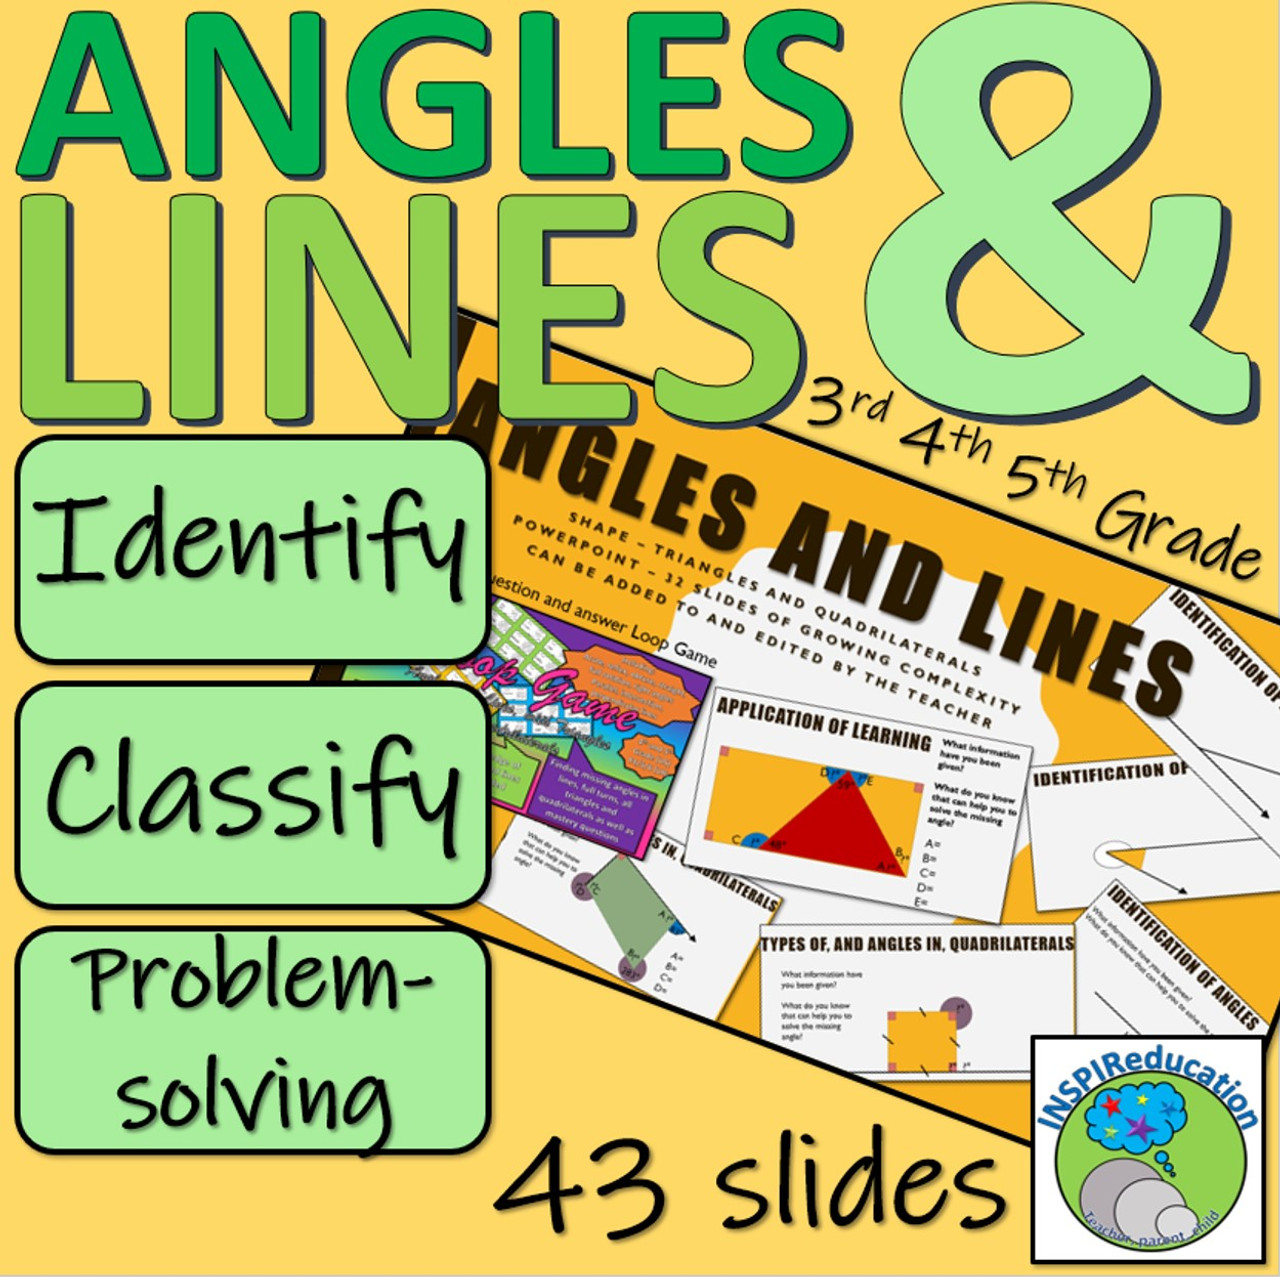 Angles and Lines - Classification and Problem Solving within context